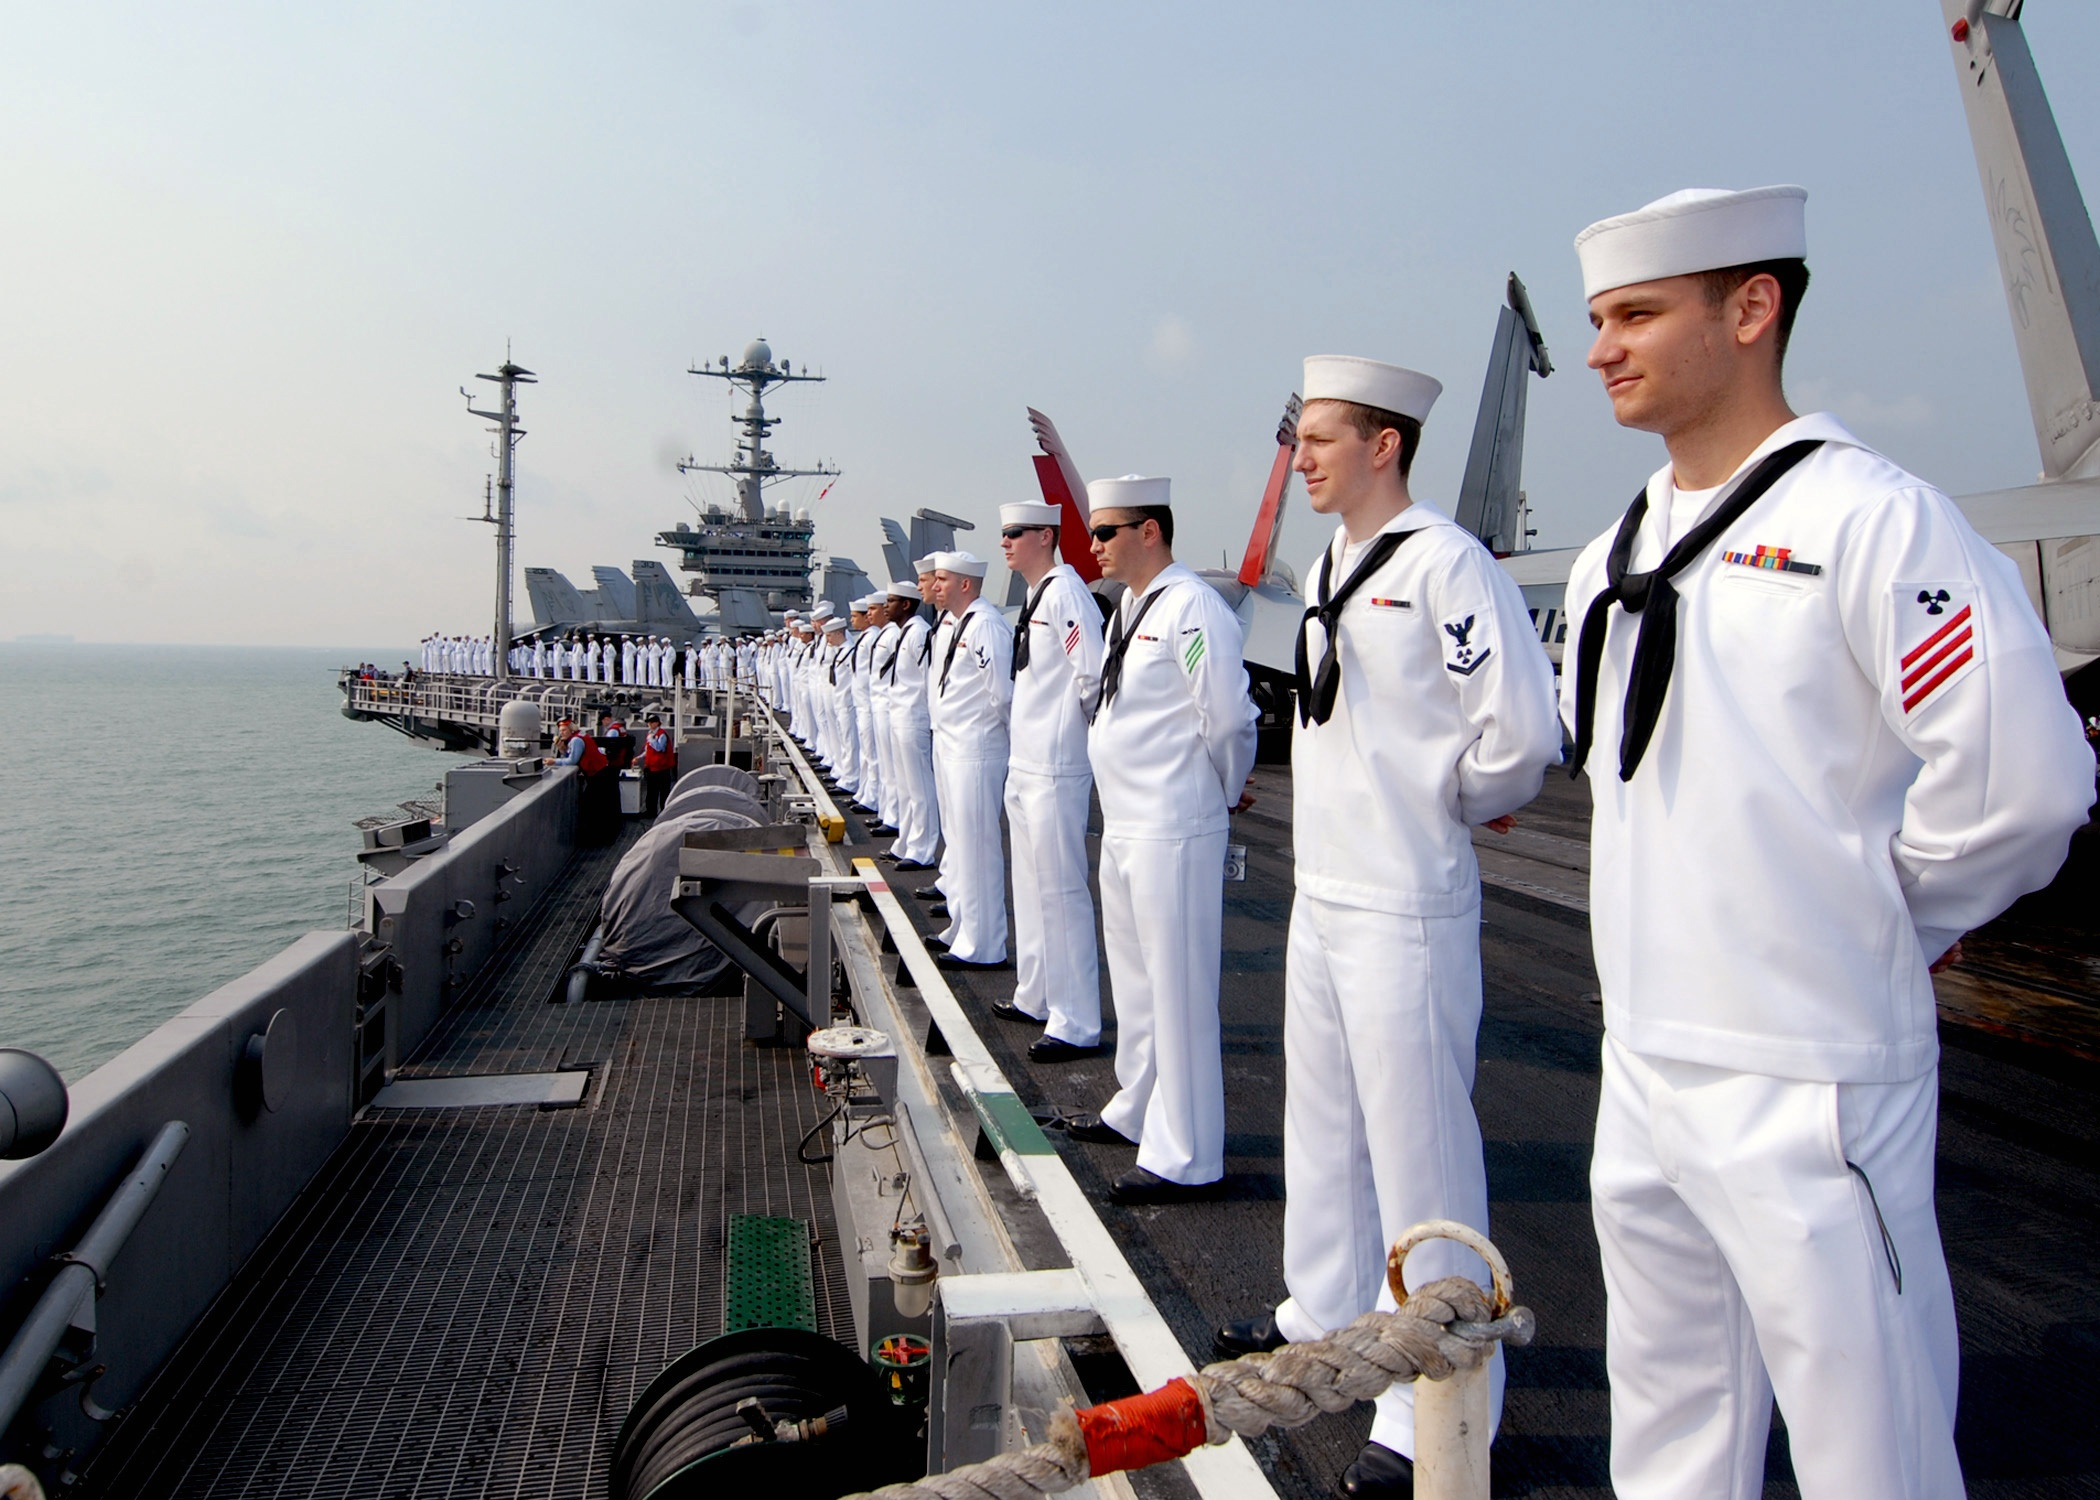 US_Navy_090802-N-6720T-045_Sailors_man_the_rails_aboard_the_aircraft_carrier_USS_George_Washington_(CVN_73)_while_underway_off_the_coast_of_Singapore